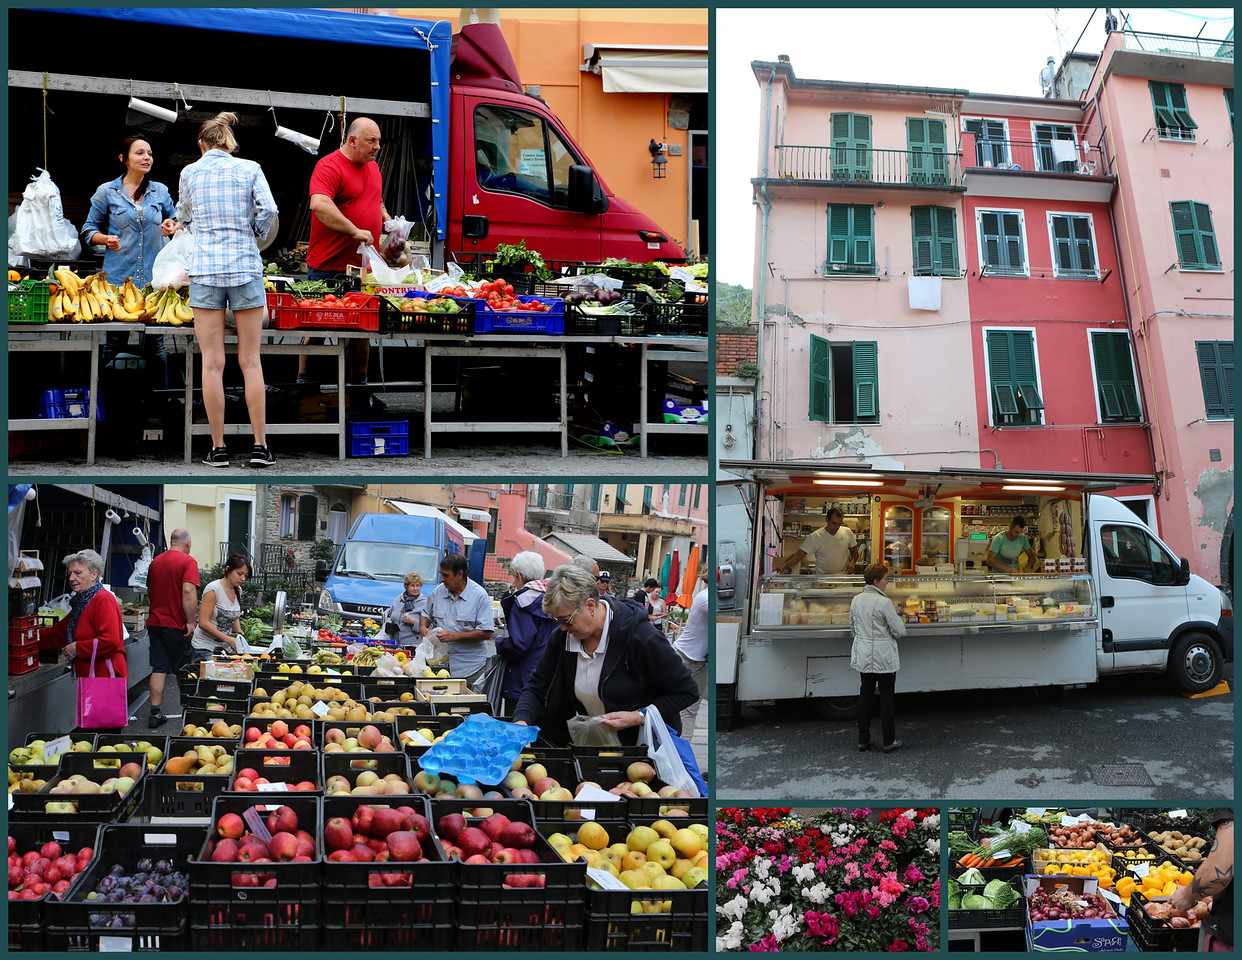 Tuesday morning is market day in Vernazza - vendors set up produce and other stands for Vernazza shoppers.